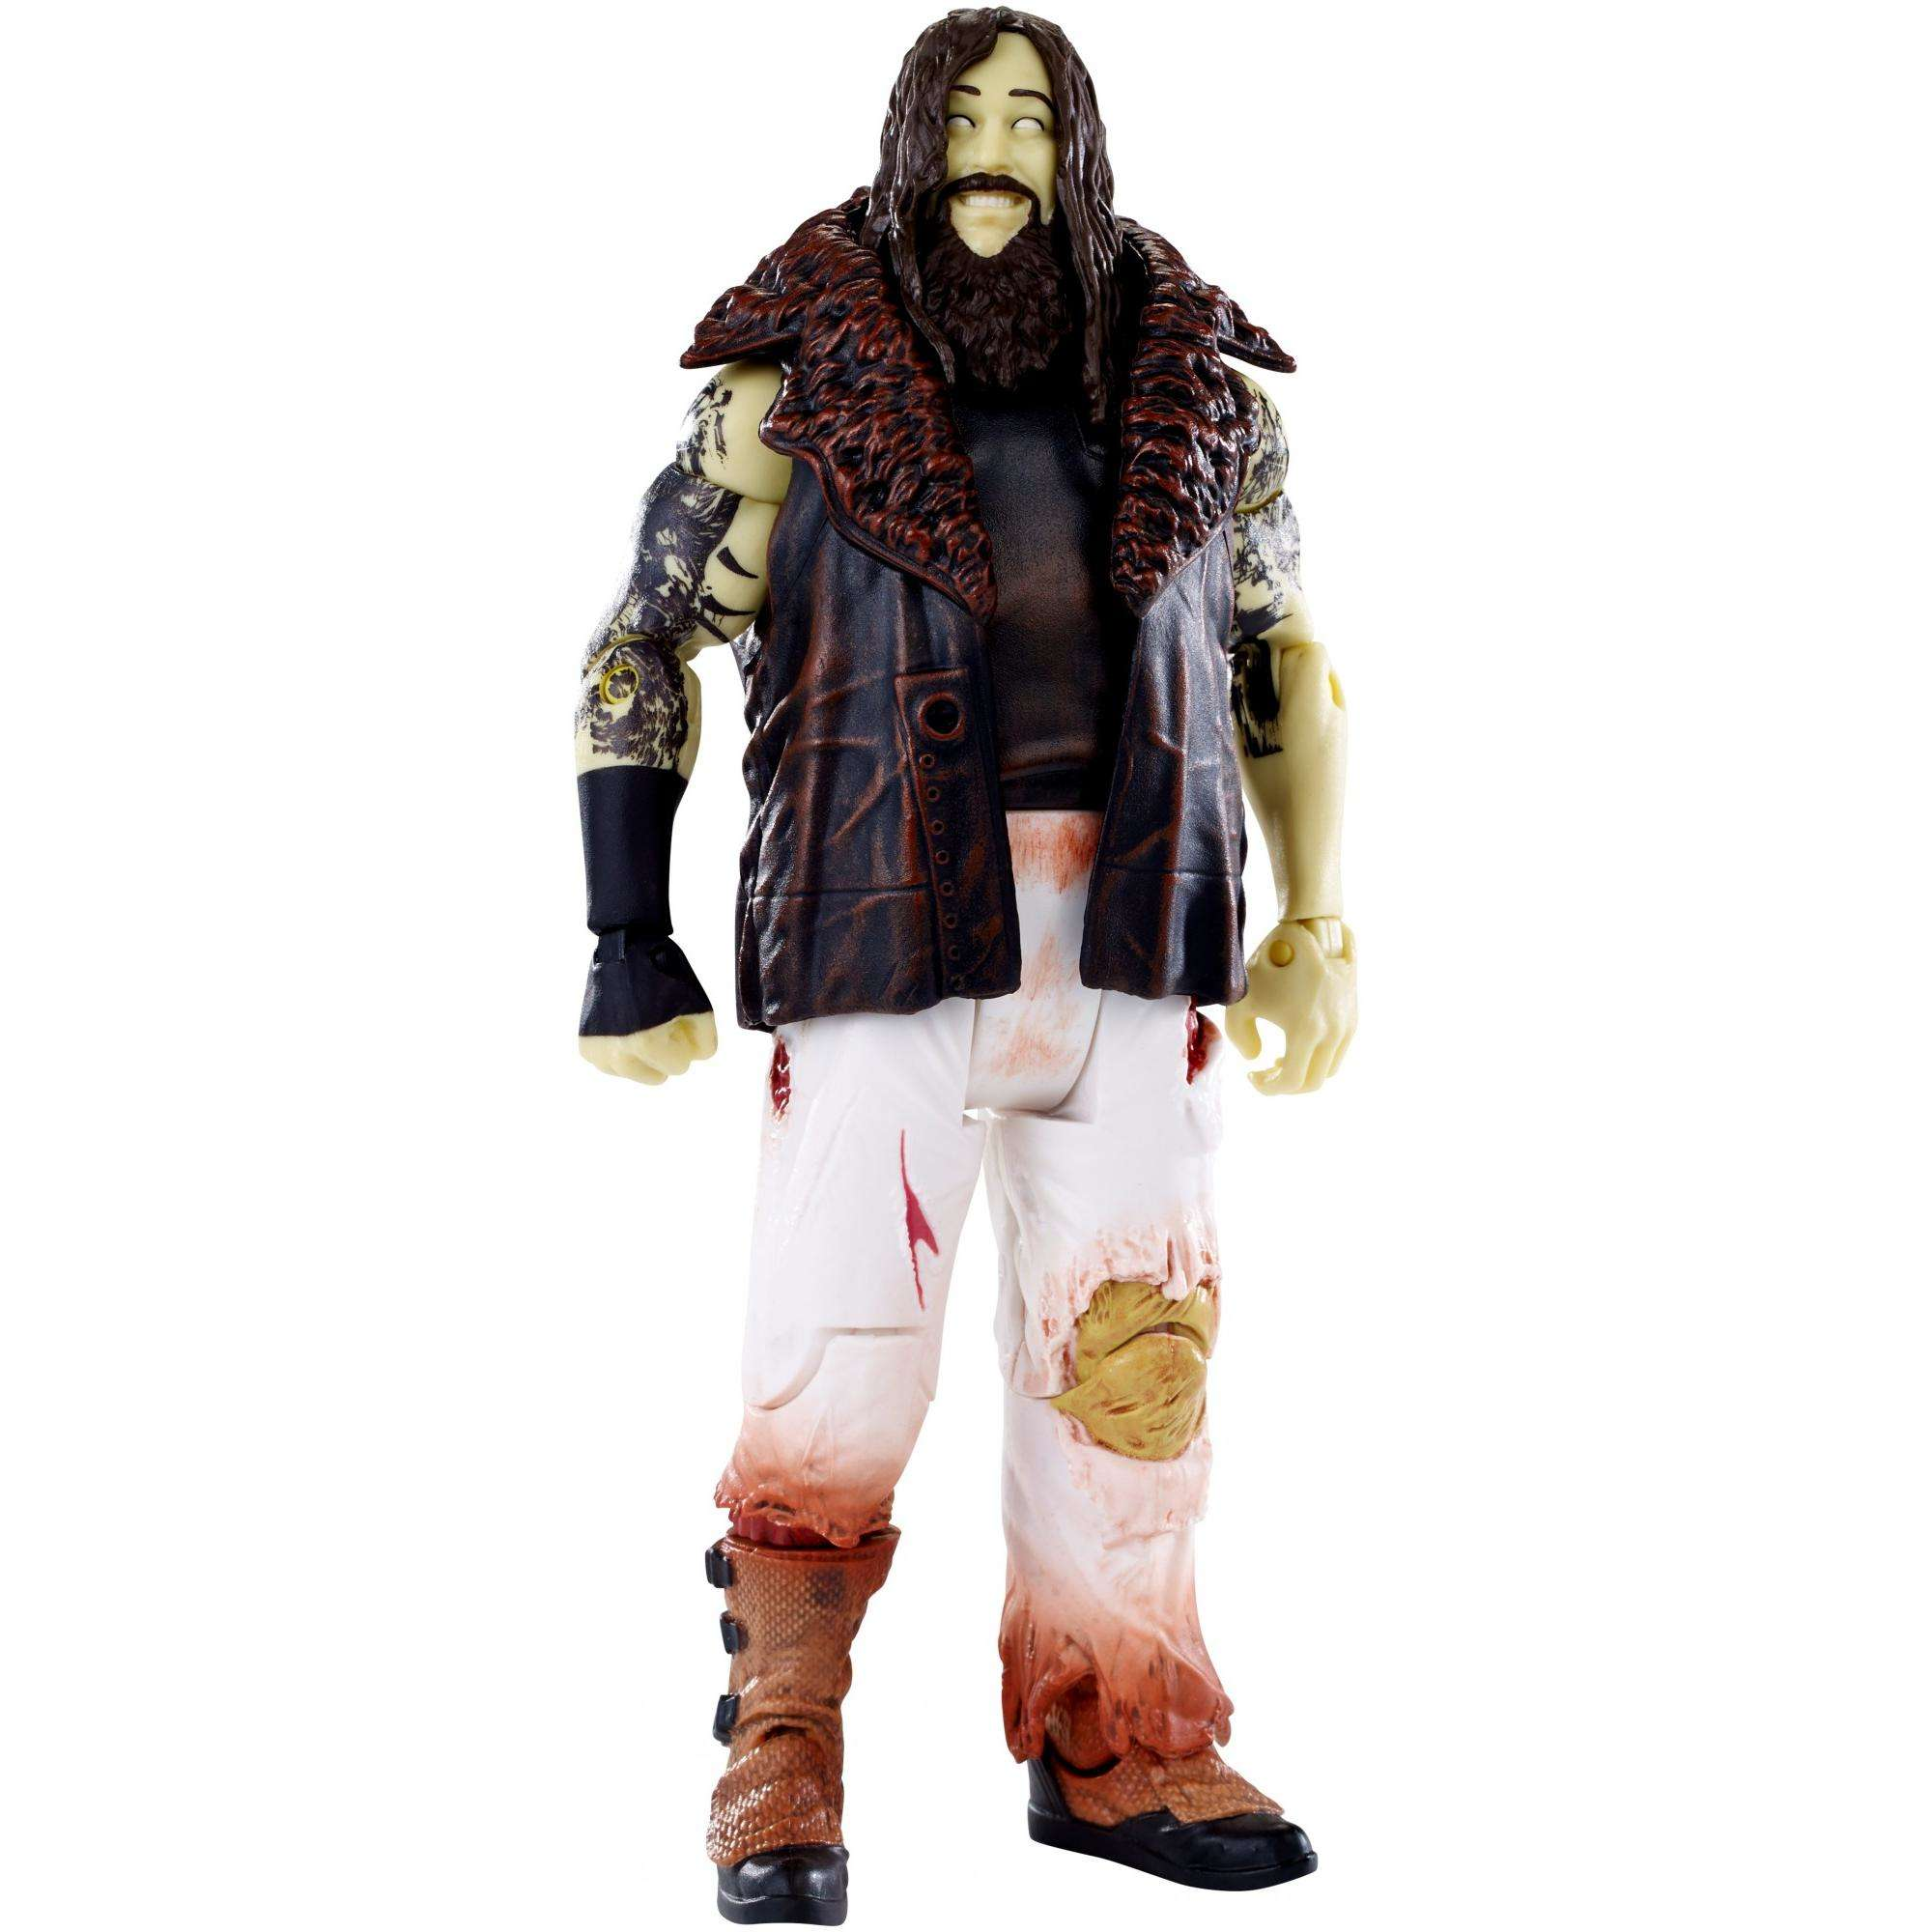 WWE Zombies Bray Wyatt Figure